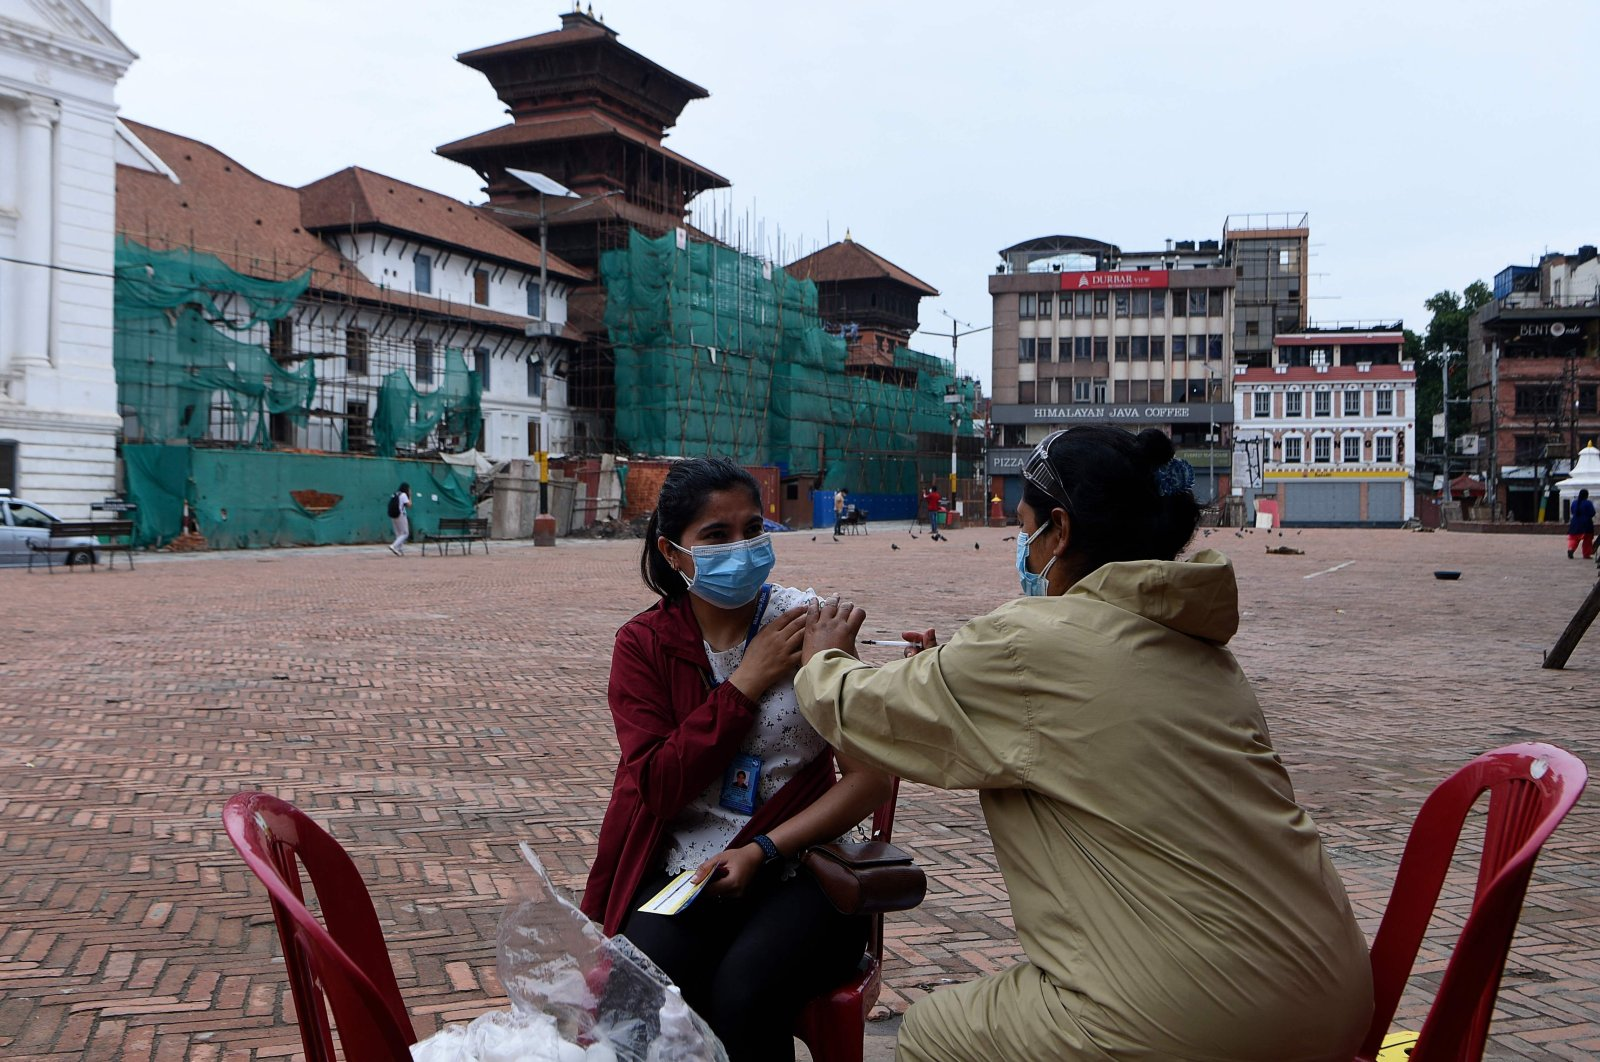 A health worker inoculates a woman with the Chinese-made Vero Cell COVID-19 vaccine in Kathmandu, Nepal, May 25, 2021. (AFP Photo)